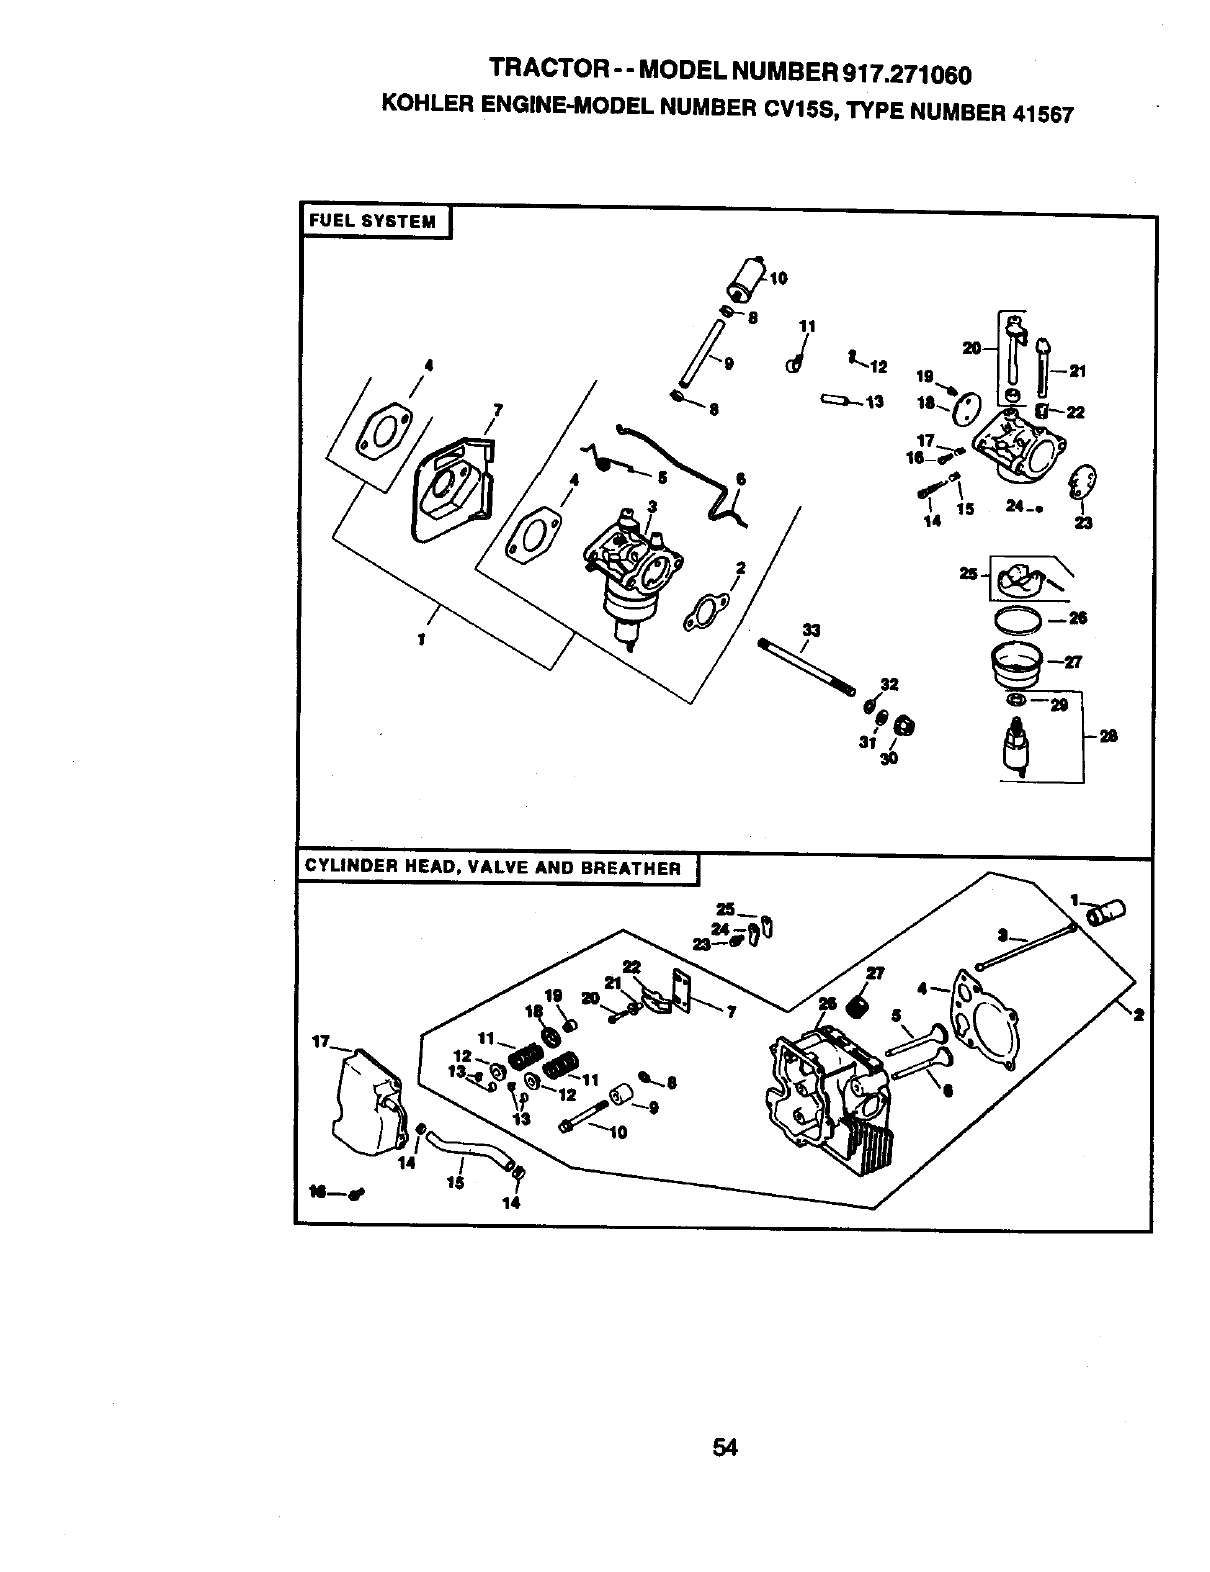 Craftsman 917271060 User Manual 155hp 42 Automatic Lawn Tractor Kohler 18 Hp 1046 Wiring Diagram Model Number